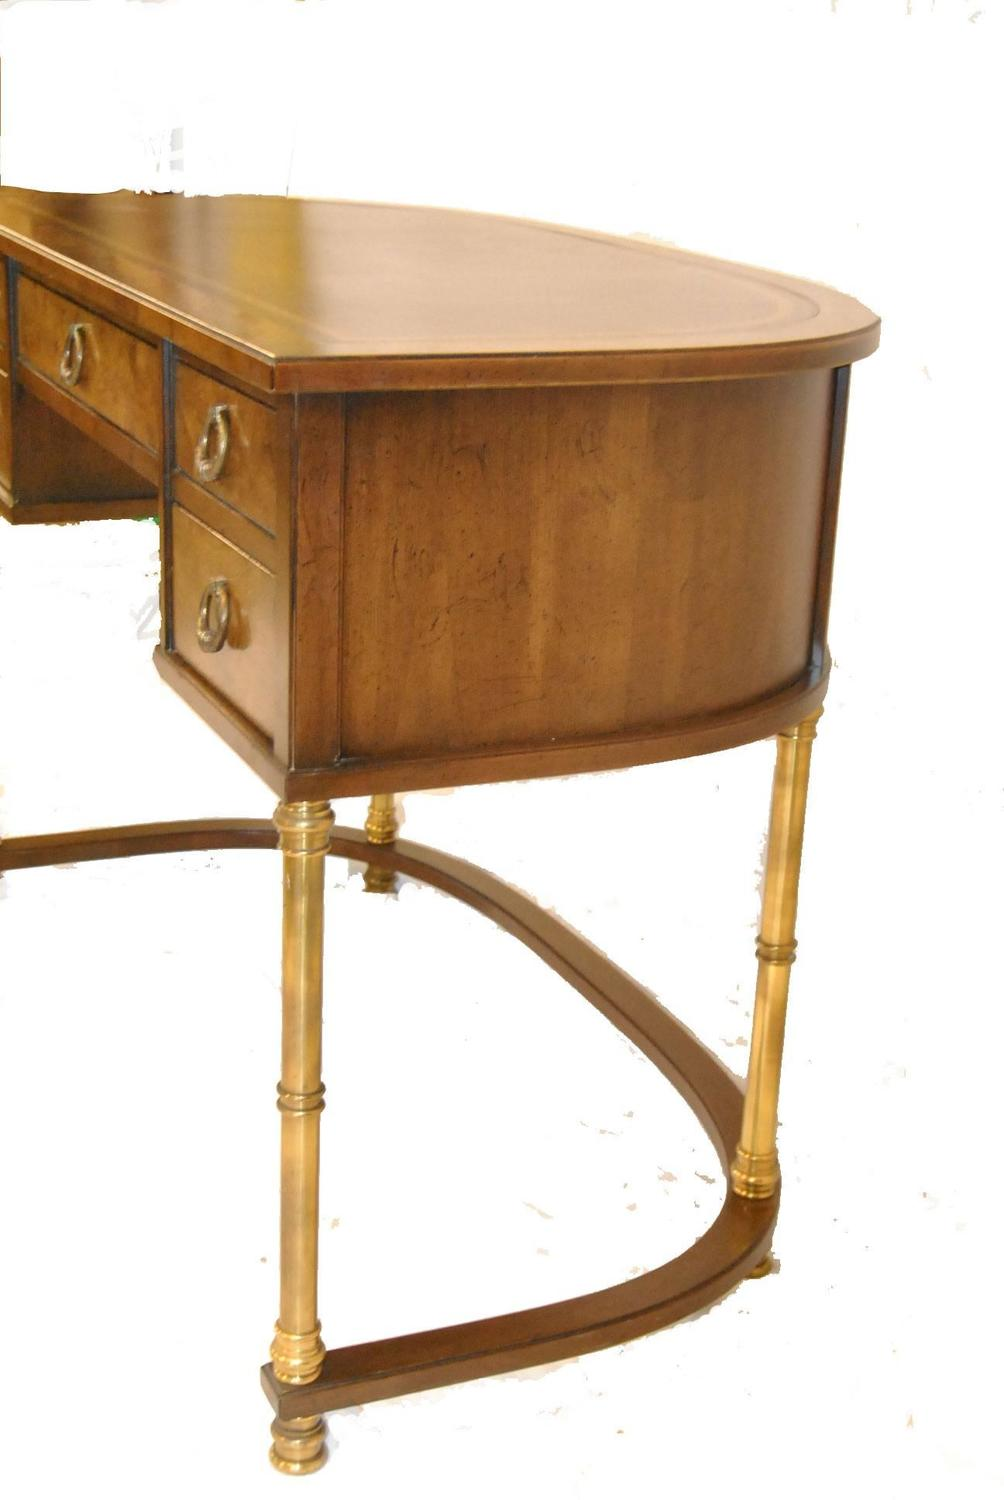 Burled Walnut and Brass La s Writing Desk by Sligh For